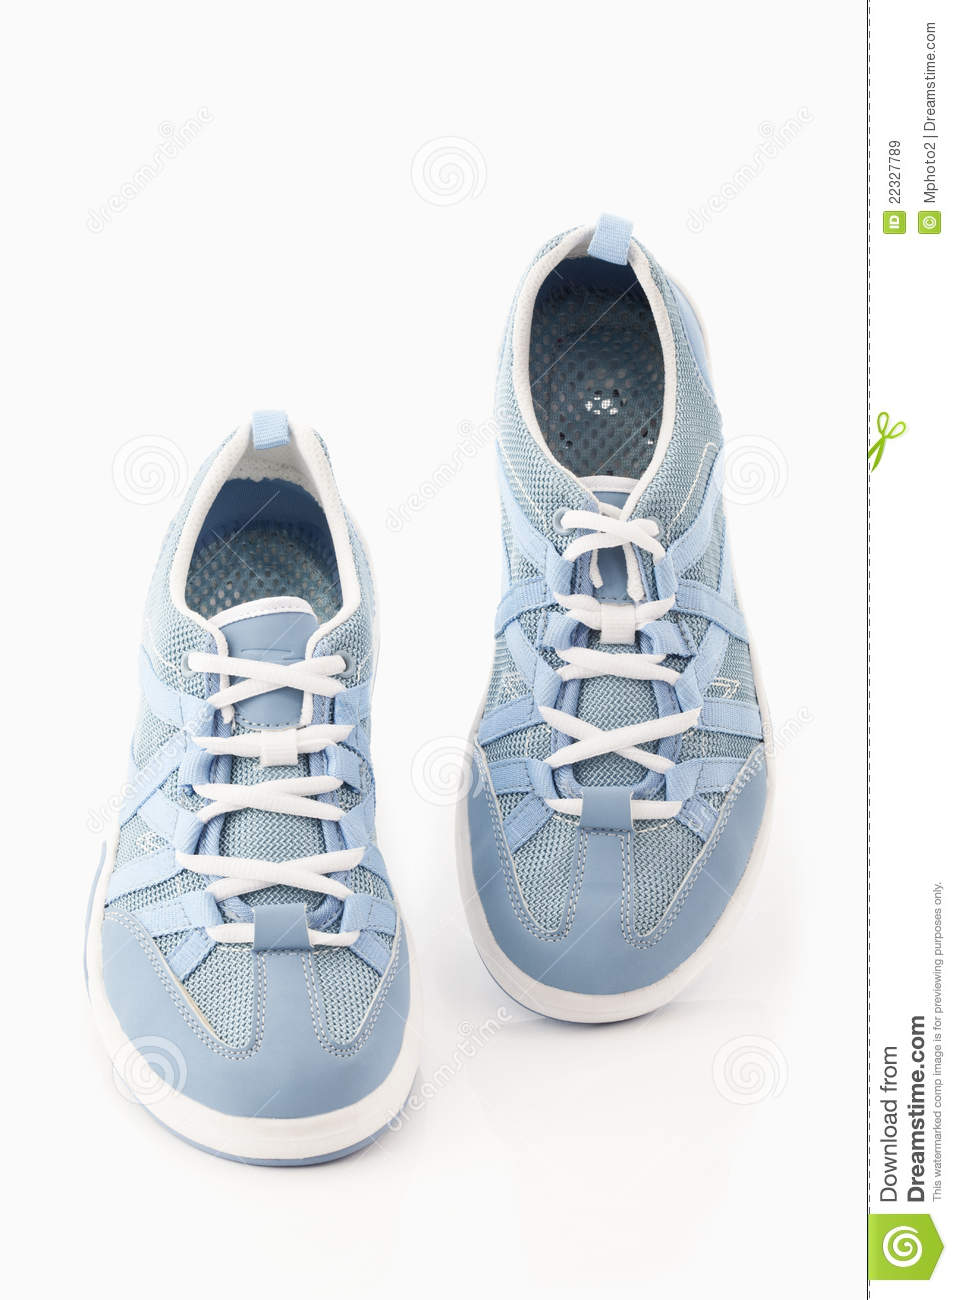 pair of women water shoes on white background